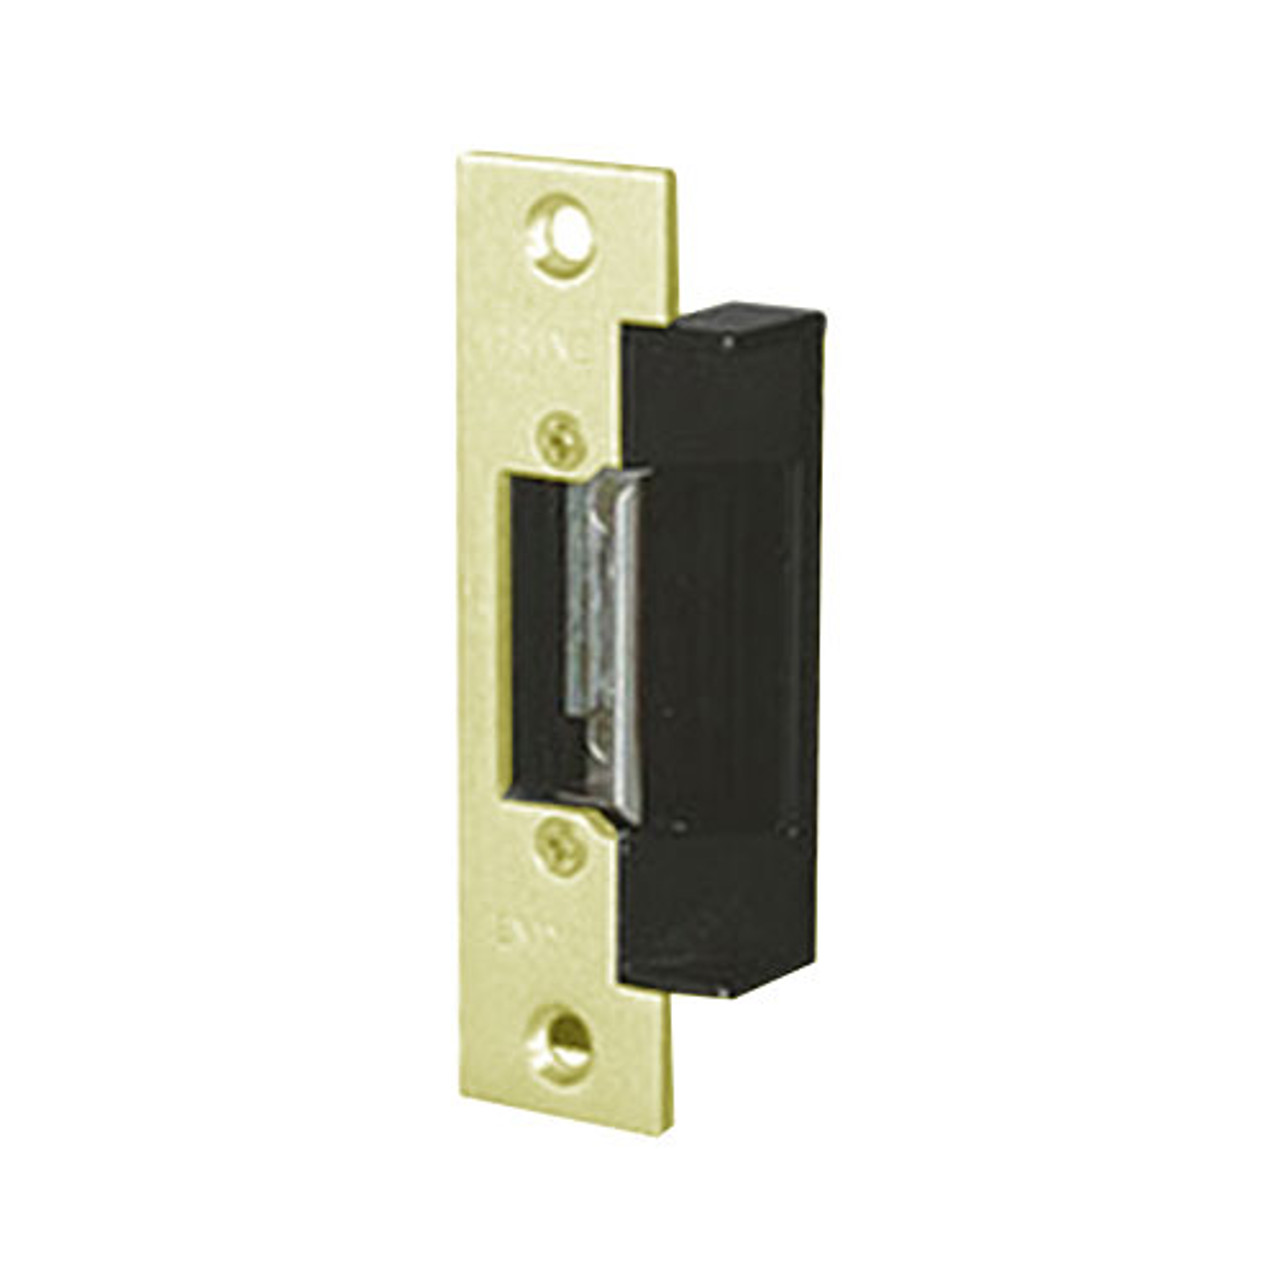 2012-16-24AC/DC Trine Light Commercial Adjustable 2000 Series Electric Strikes in Brass Powder Finish